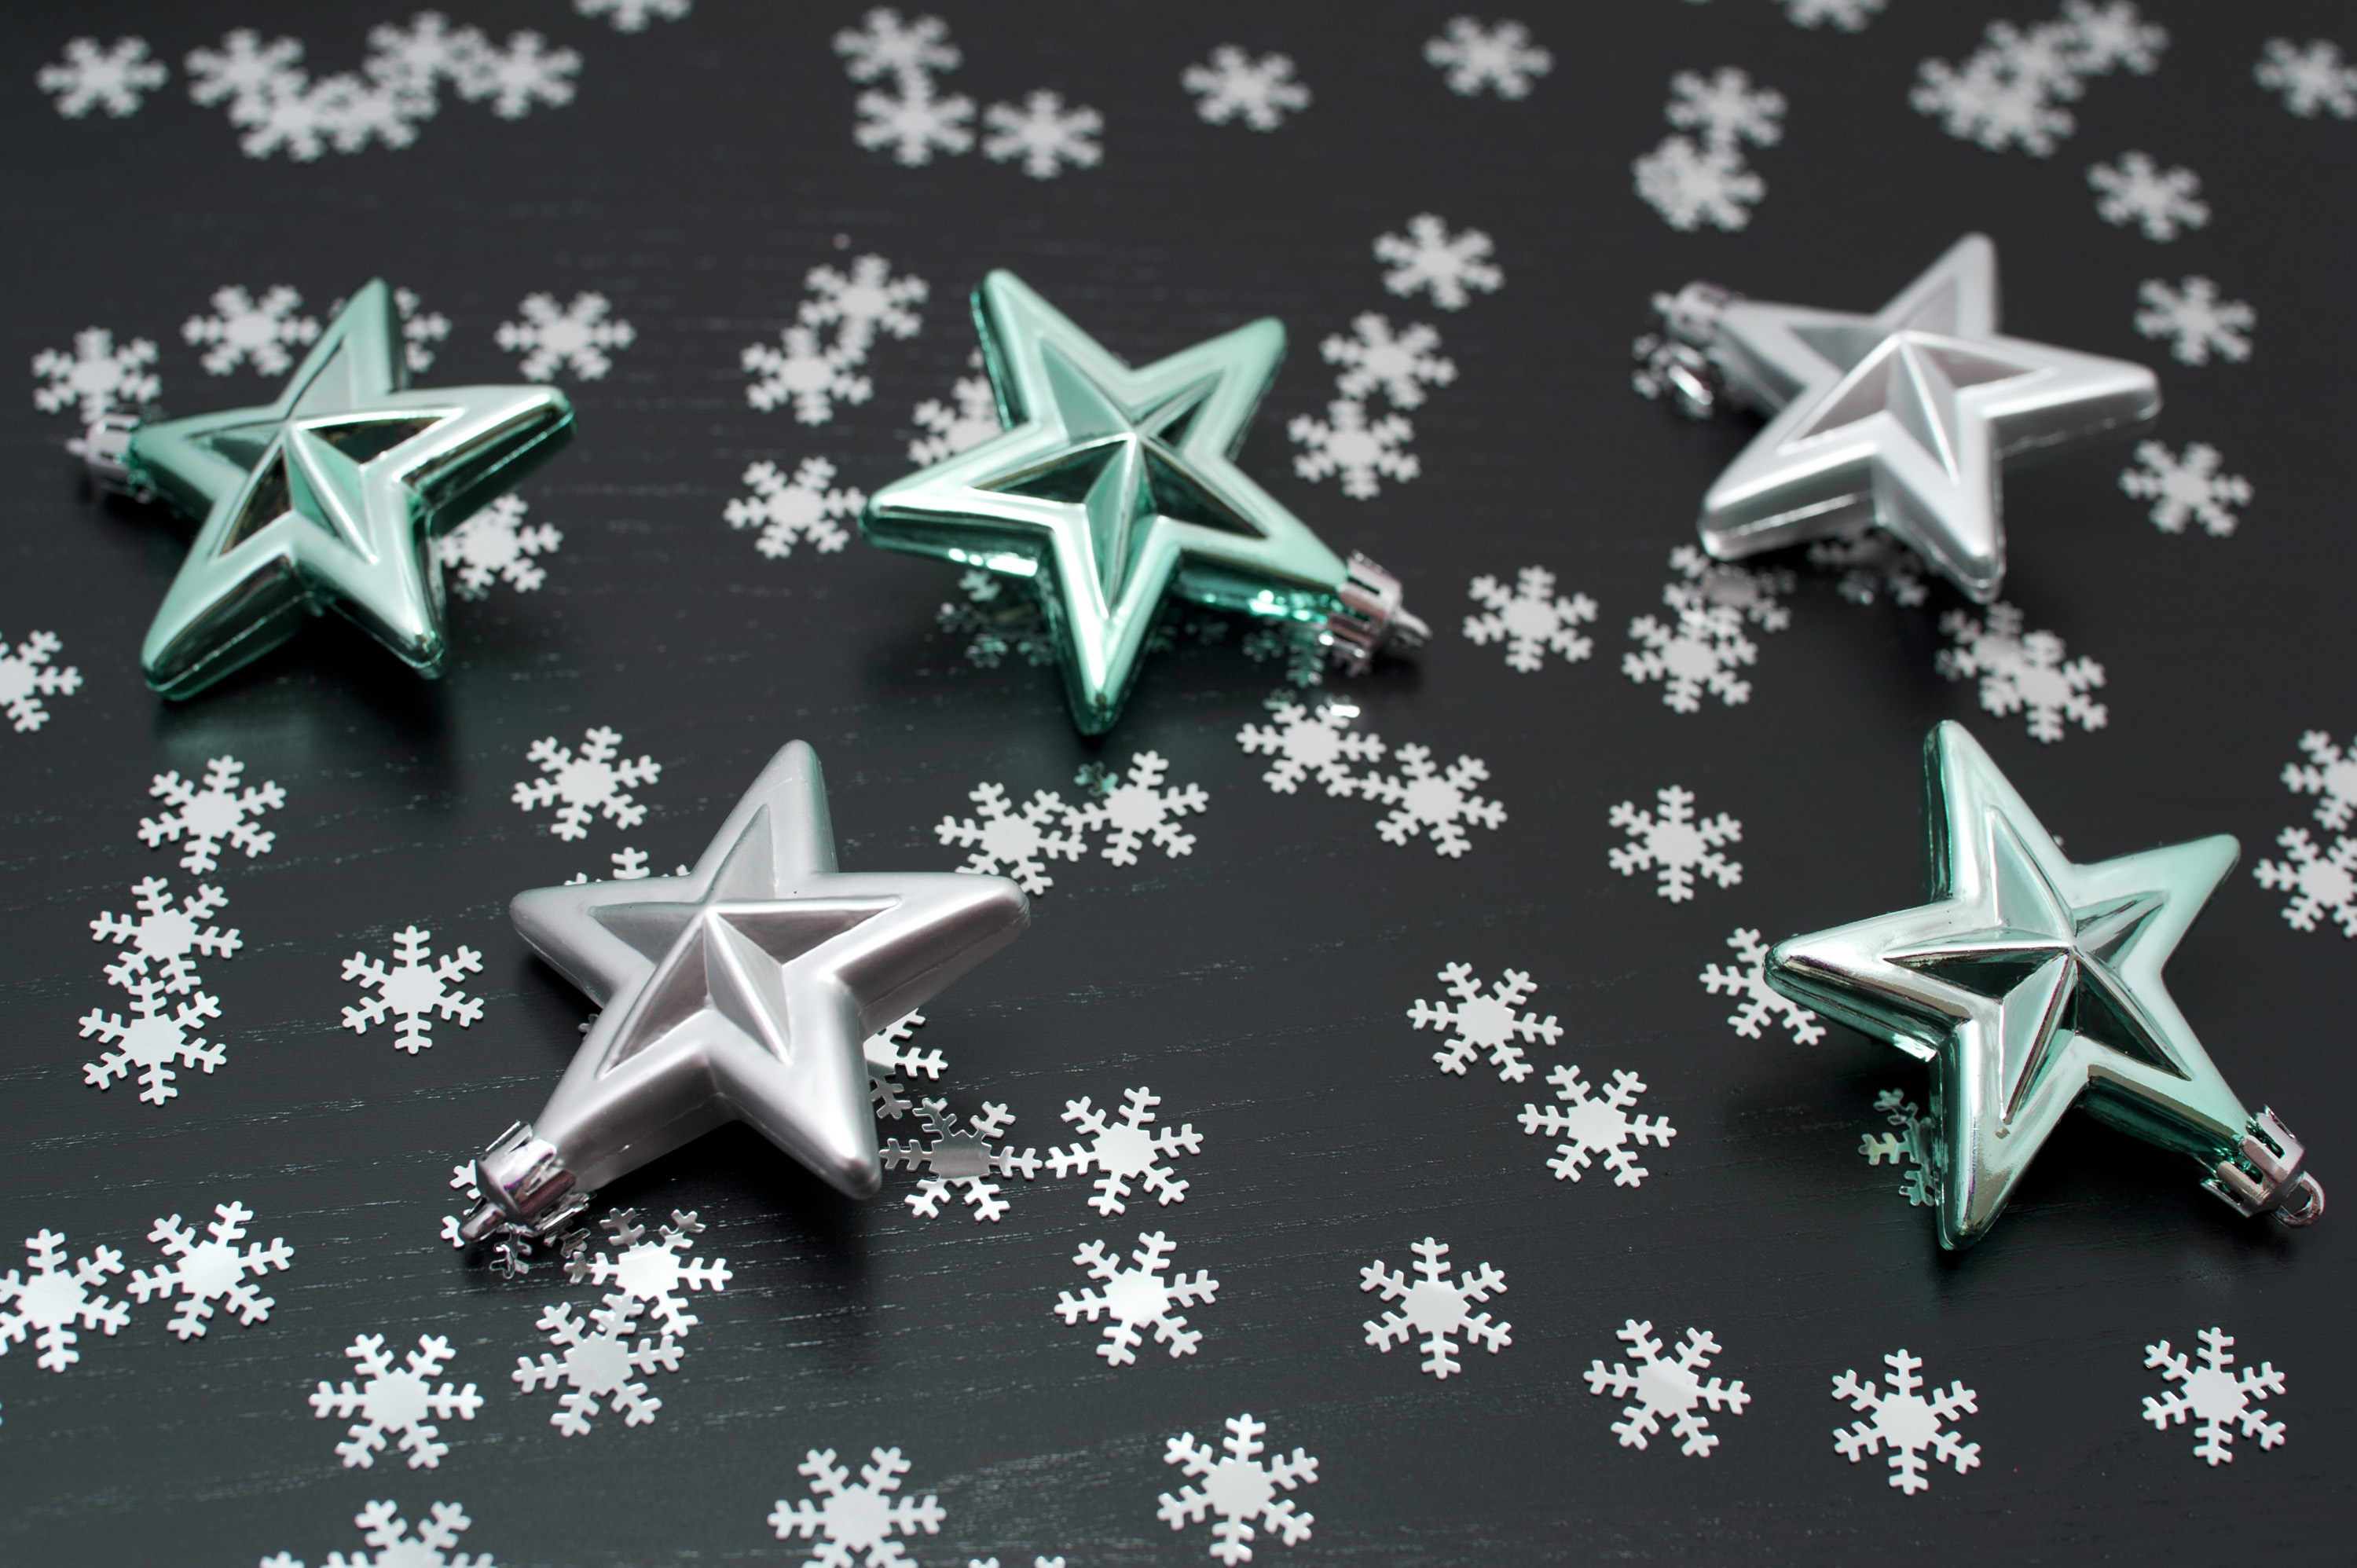 Randomly scattered festive stars and snowflakes on a black background for your seasons greetings